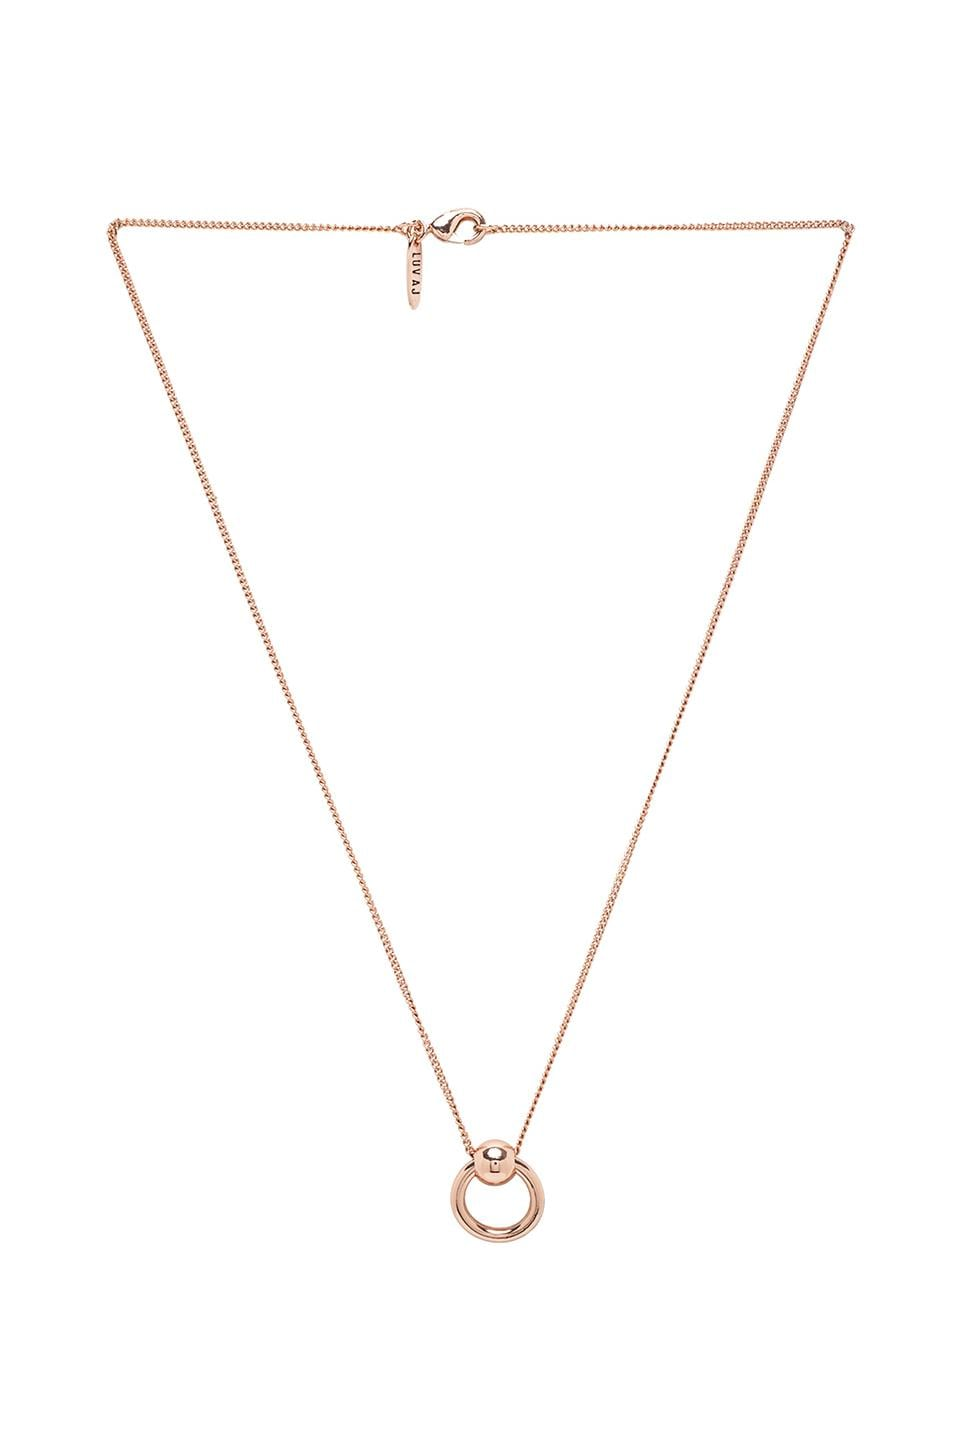 Luv AJ Ring of Fire Charm Necklace in Rose Gold